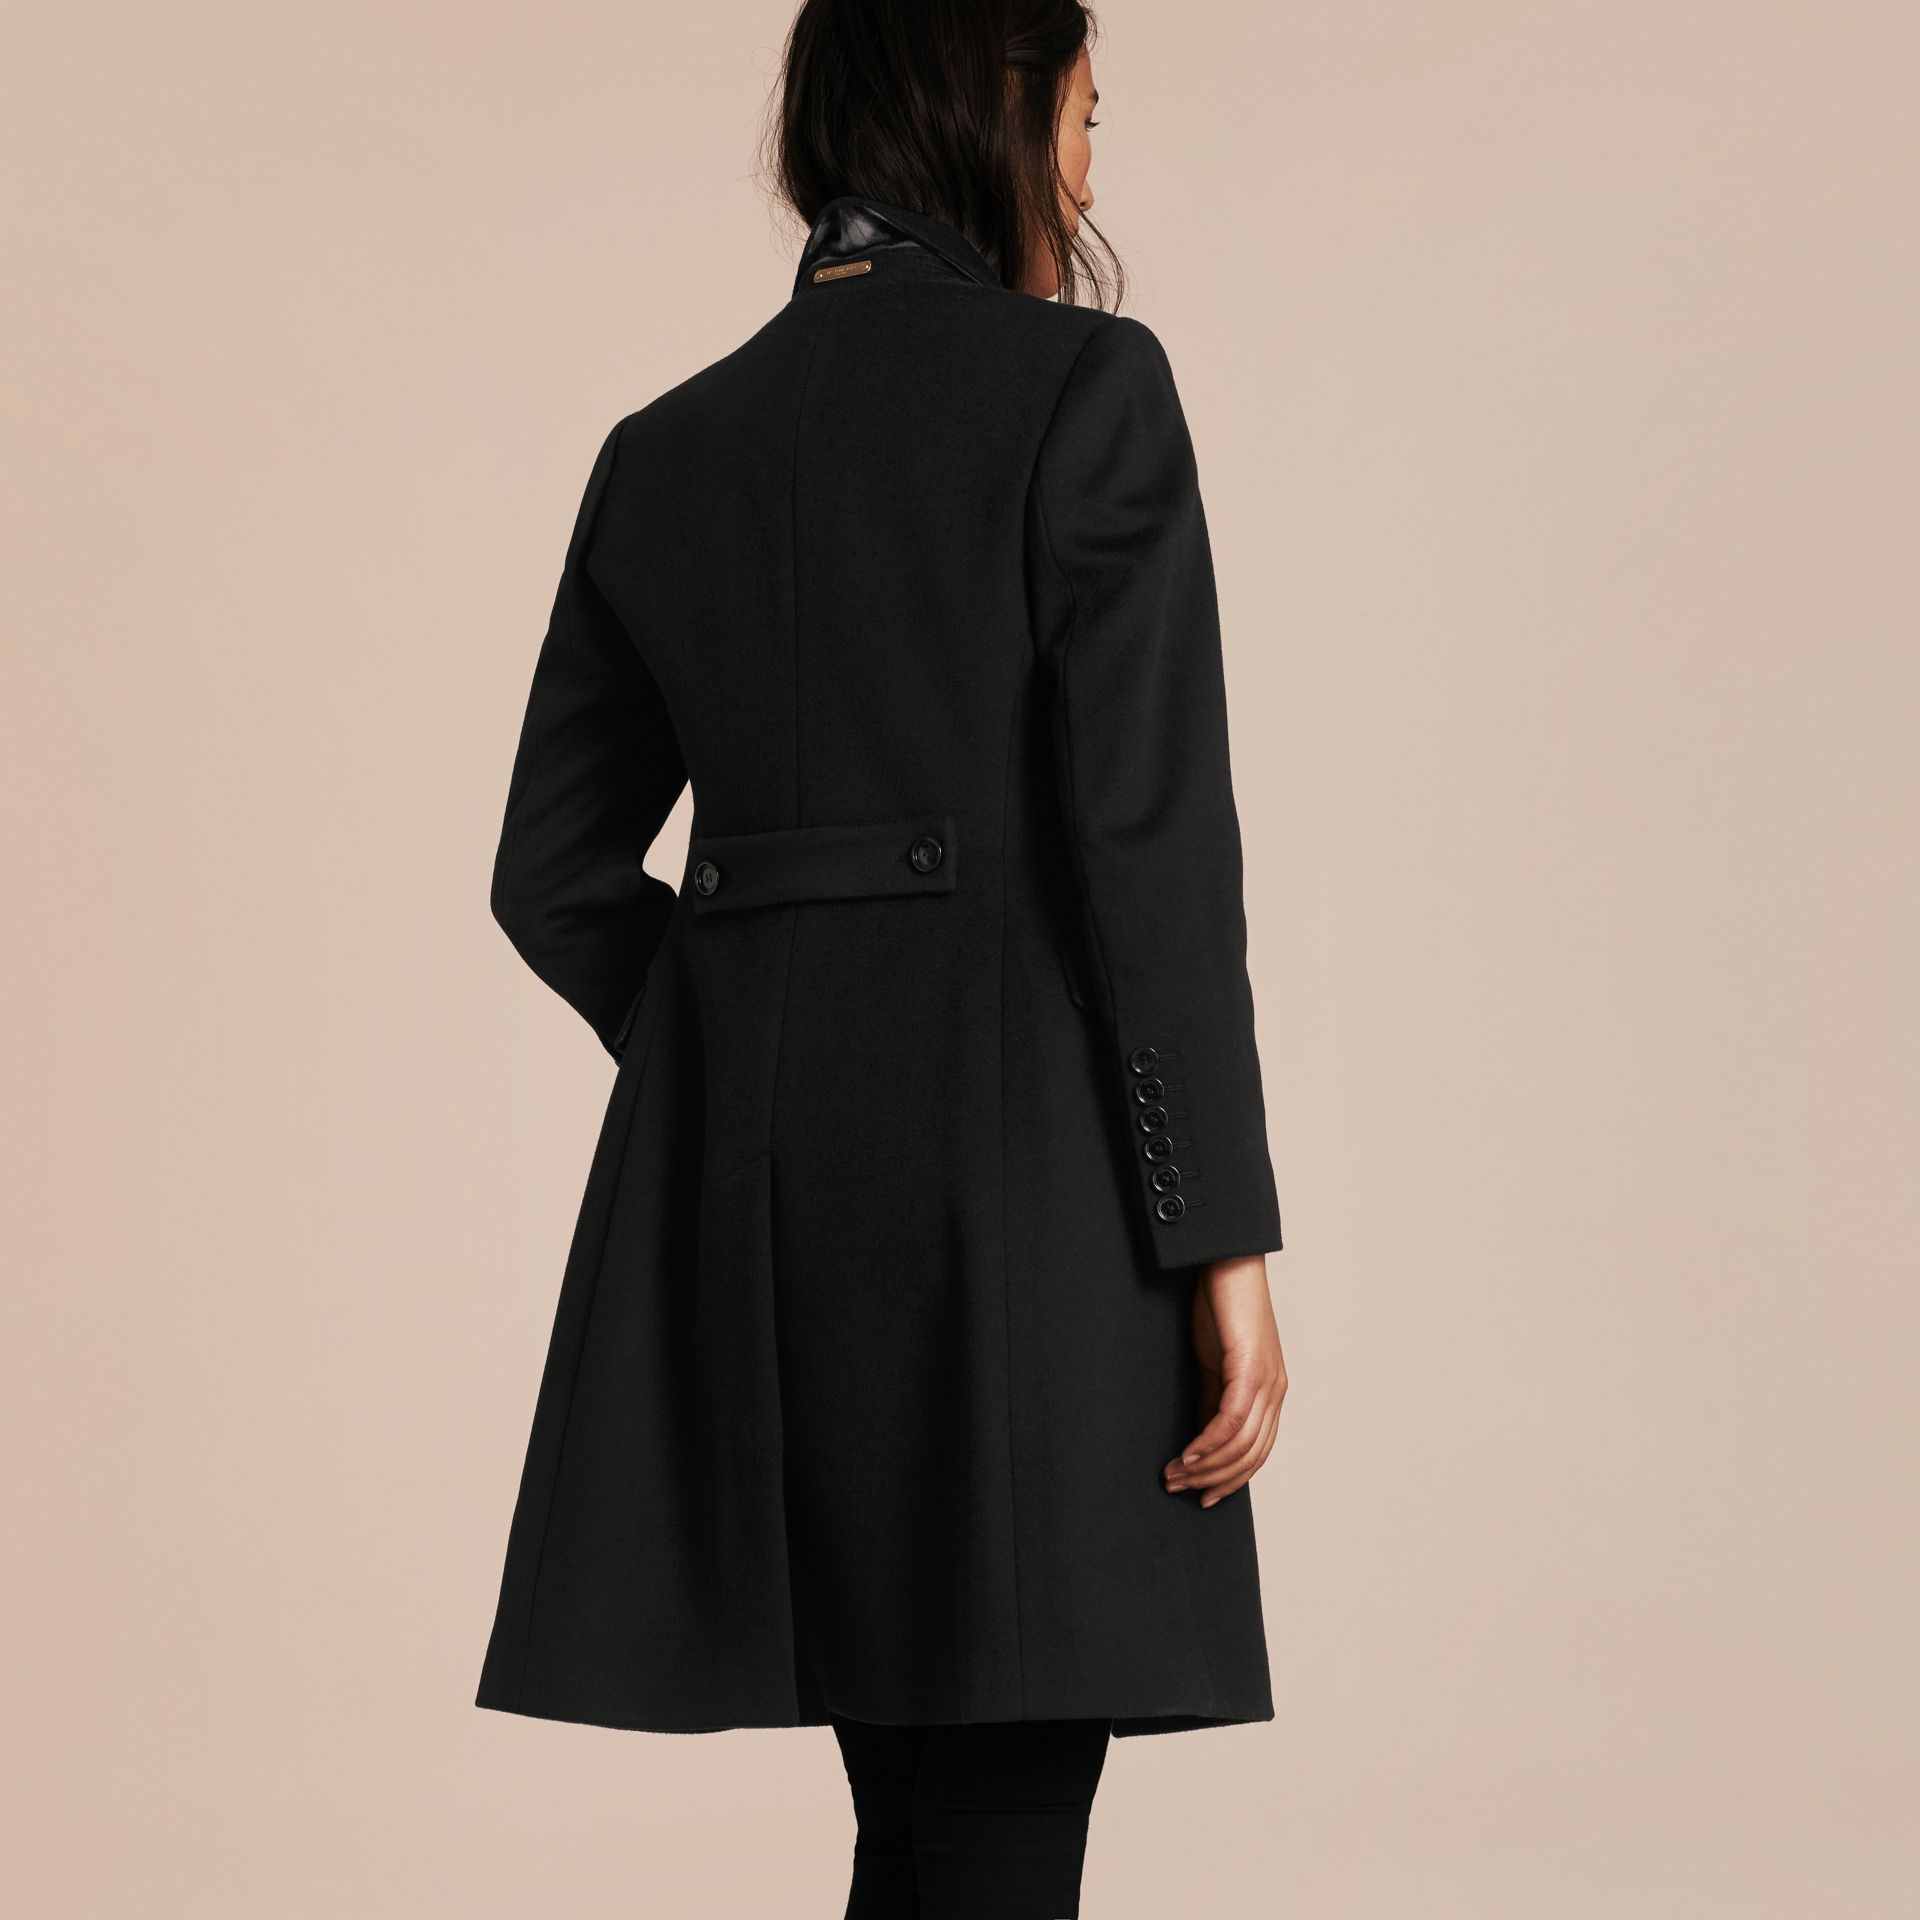 Black Tailored Wool Cashmere Coat Black - gallery image 3